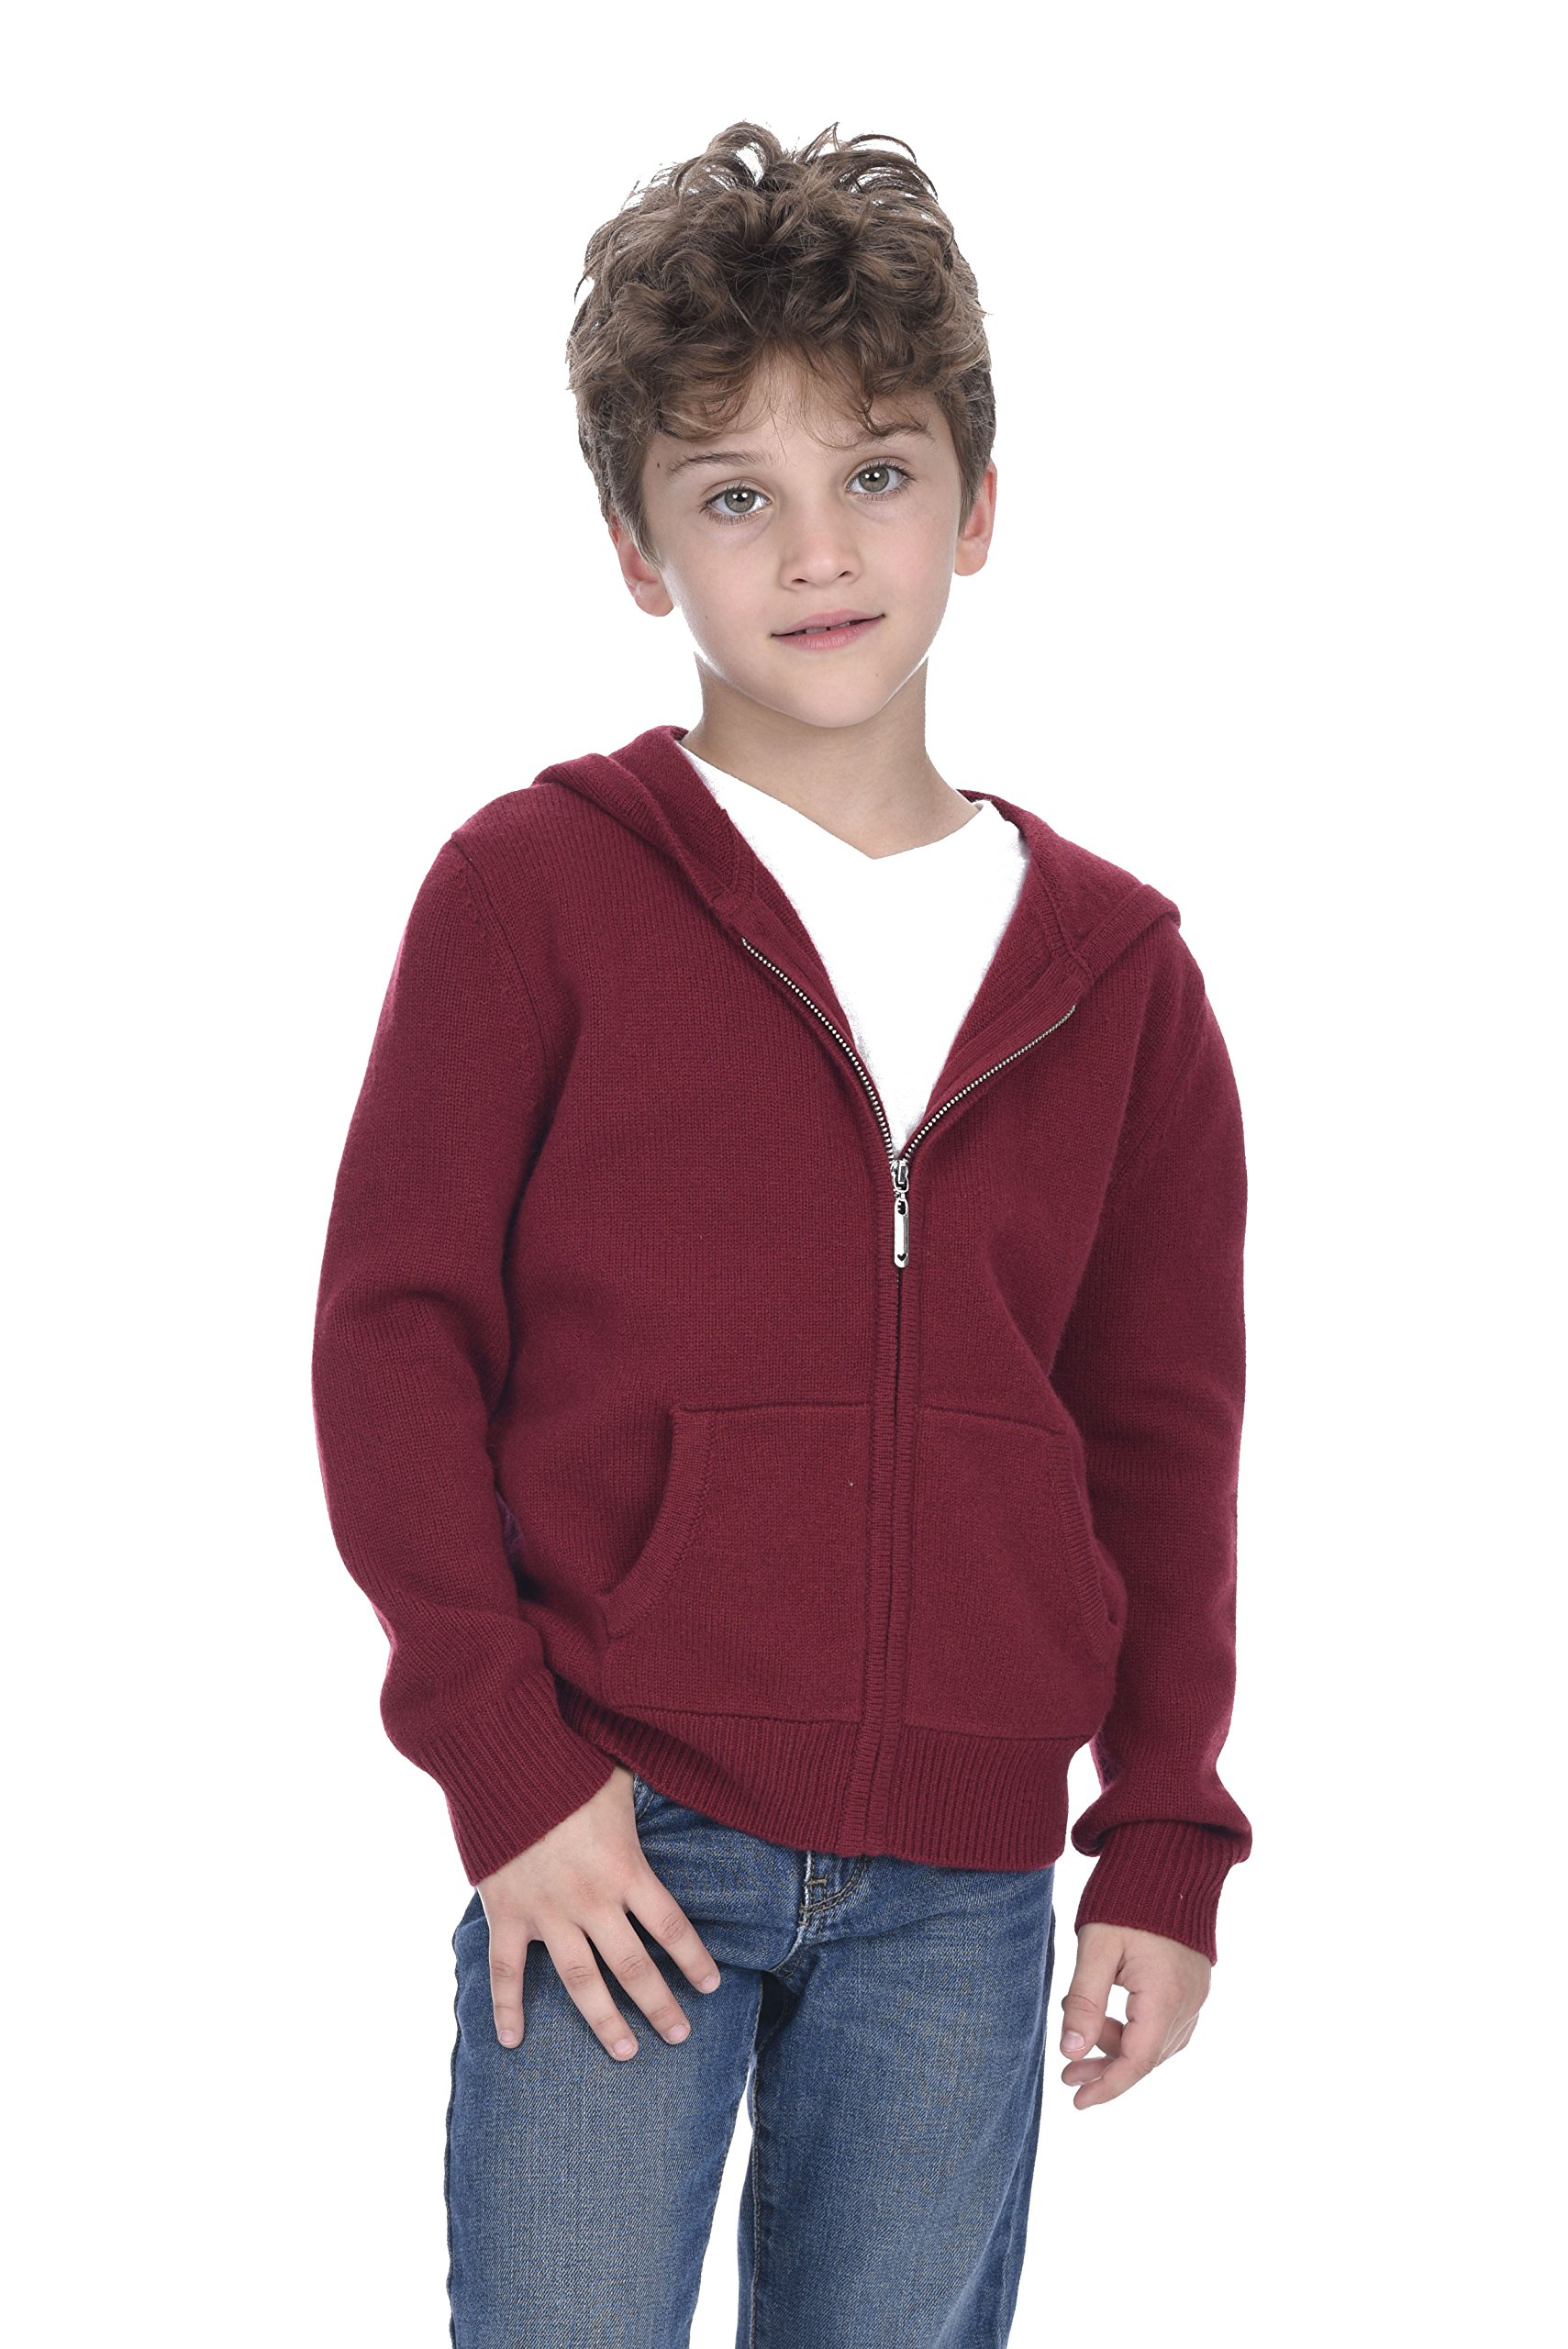 State Cashmere Unisex Kids Zip Up Hoodie Cashmere Merino Wool Long Sleeve Cardigan Sweater with Kangaroo Pocket (M(7-8 Years), Burgundy) by State Cashmere